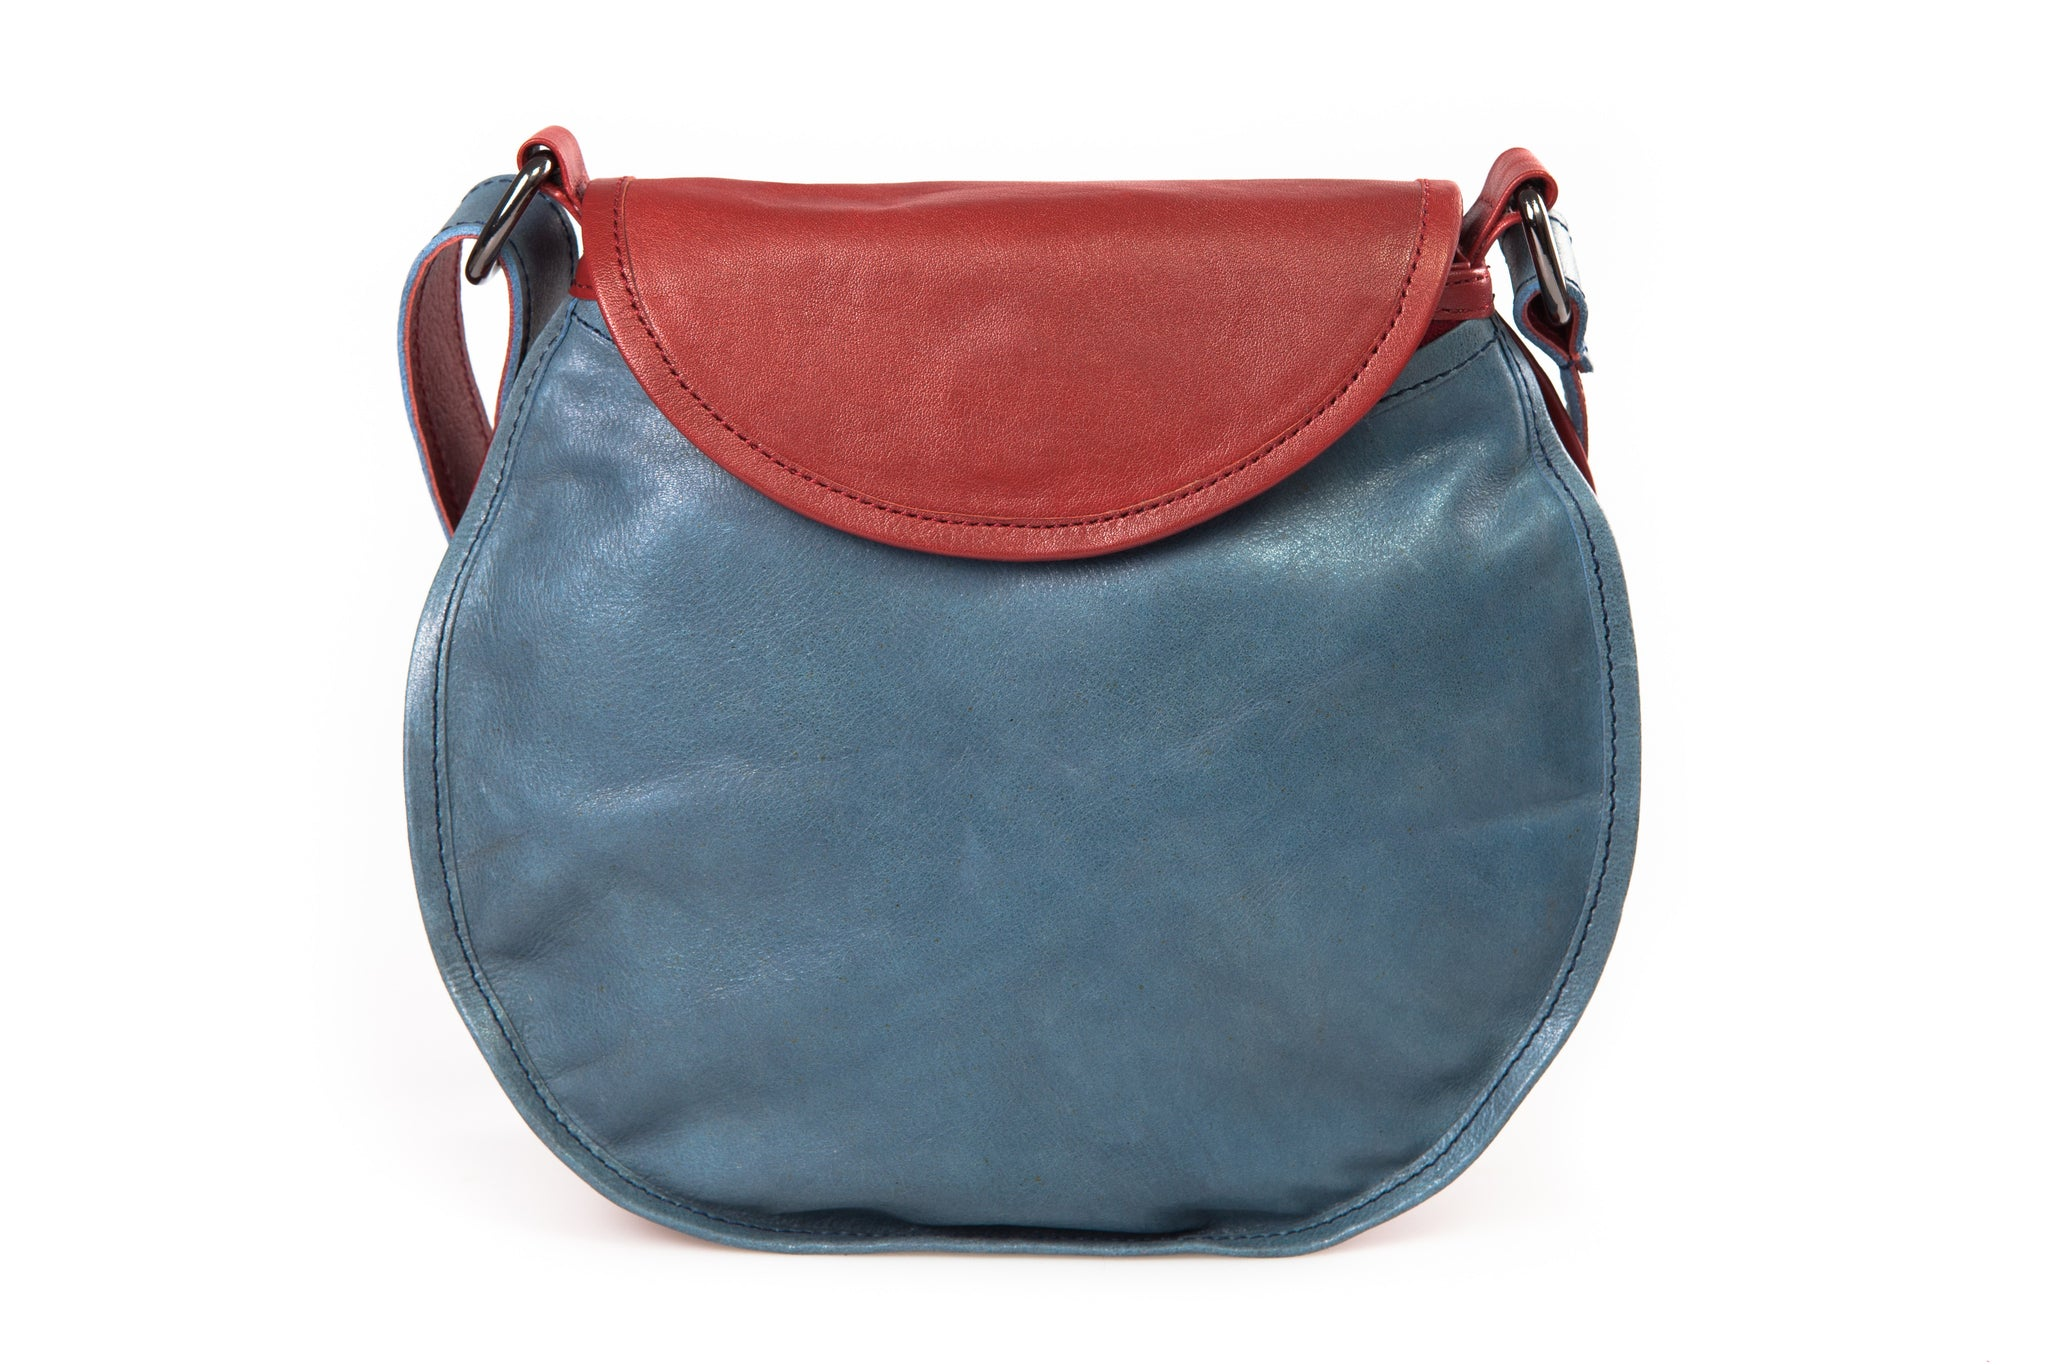 First of June, Djawa, vegetable tanned leather, leather bag, handbag